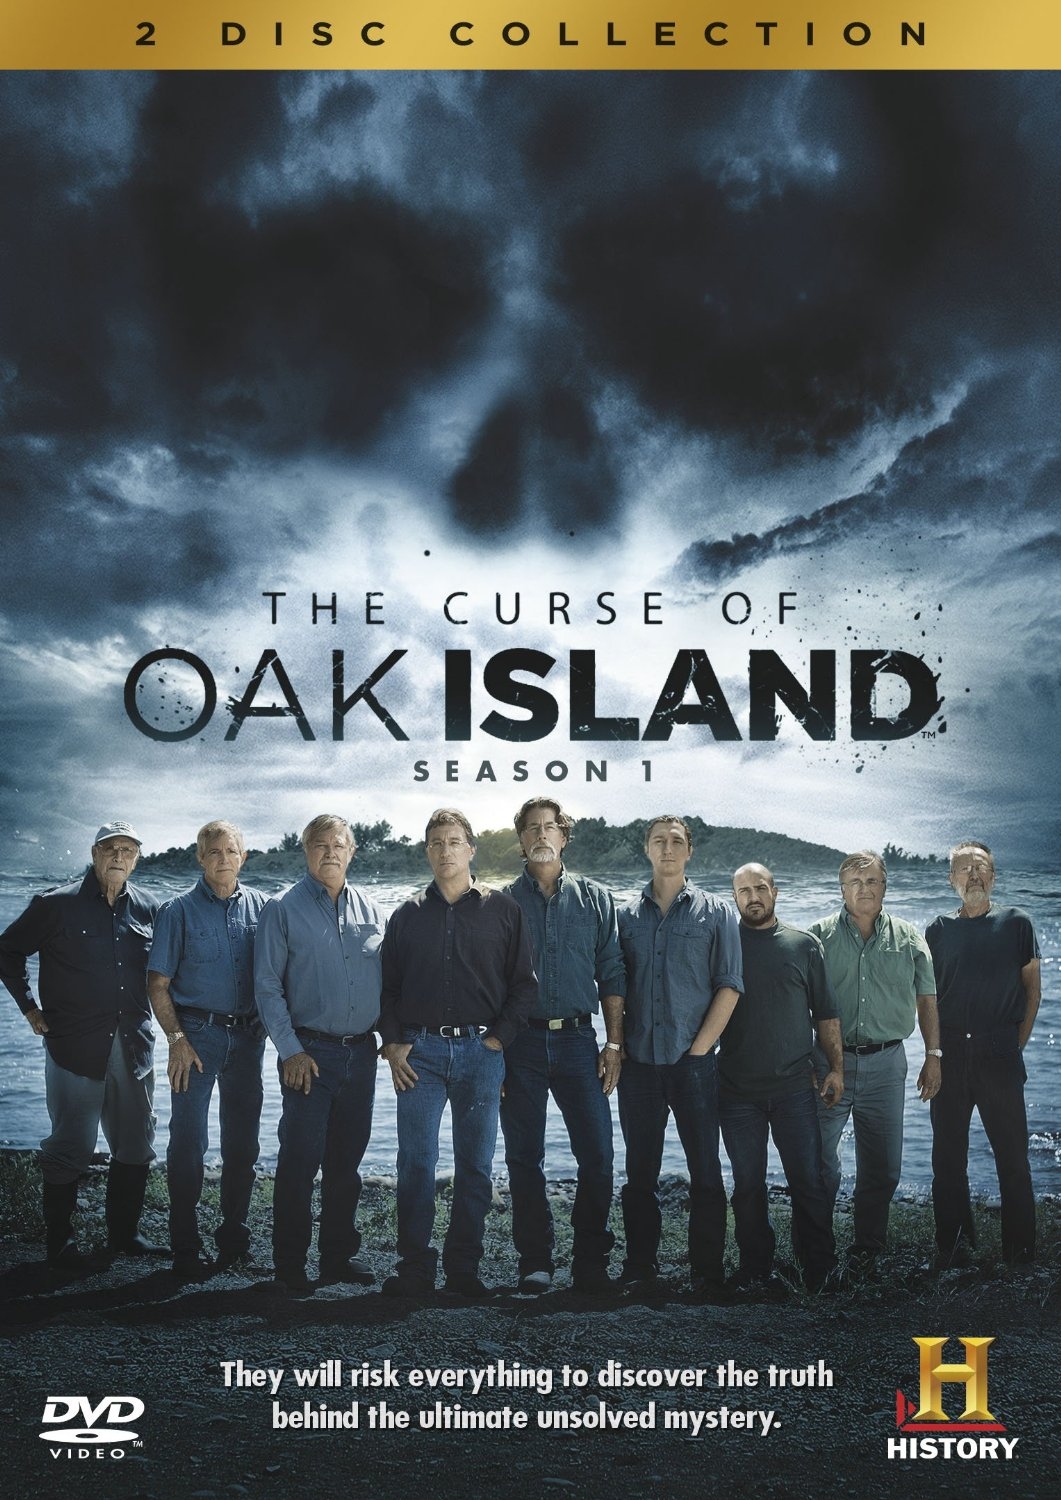 The Curse of Oak Island: Drilling Down - Season 2